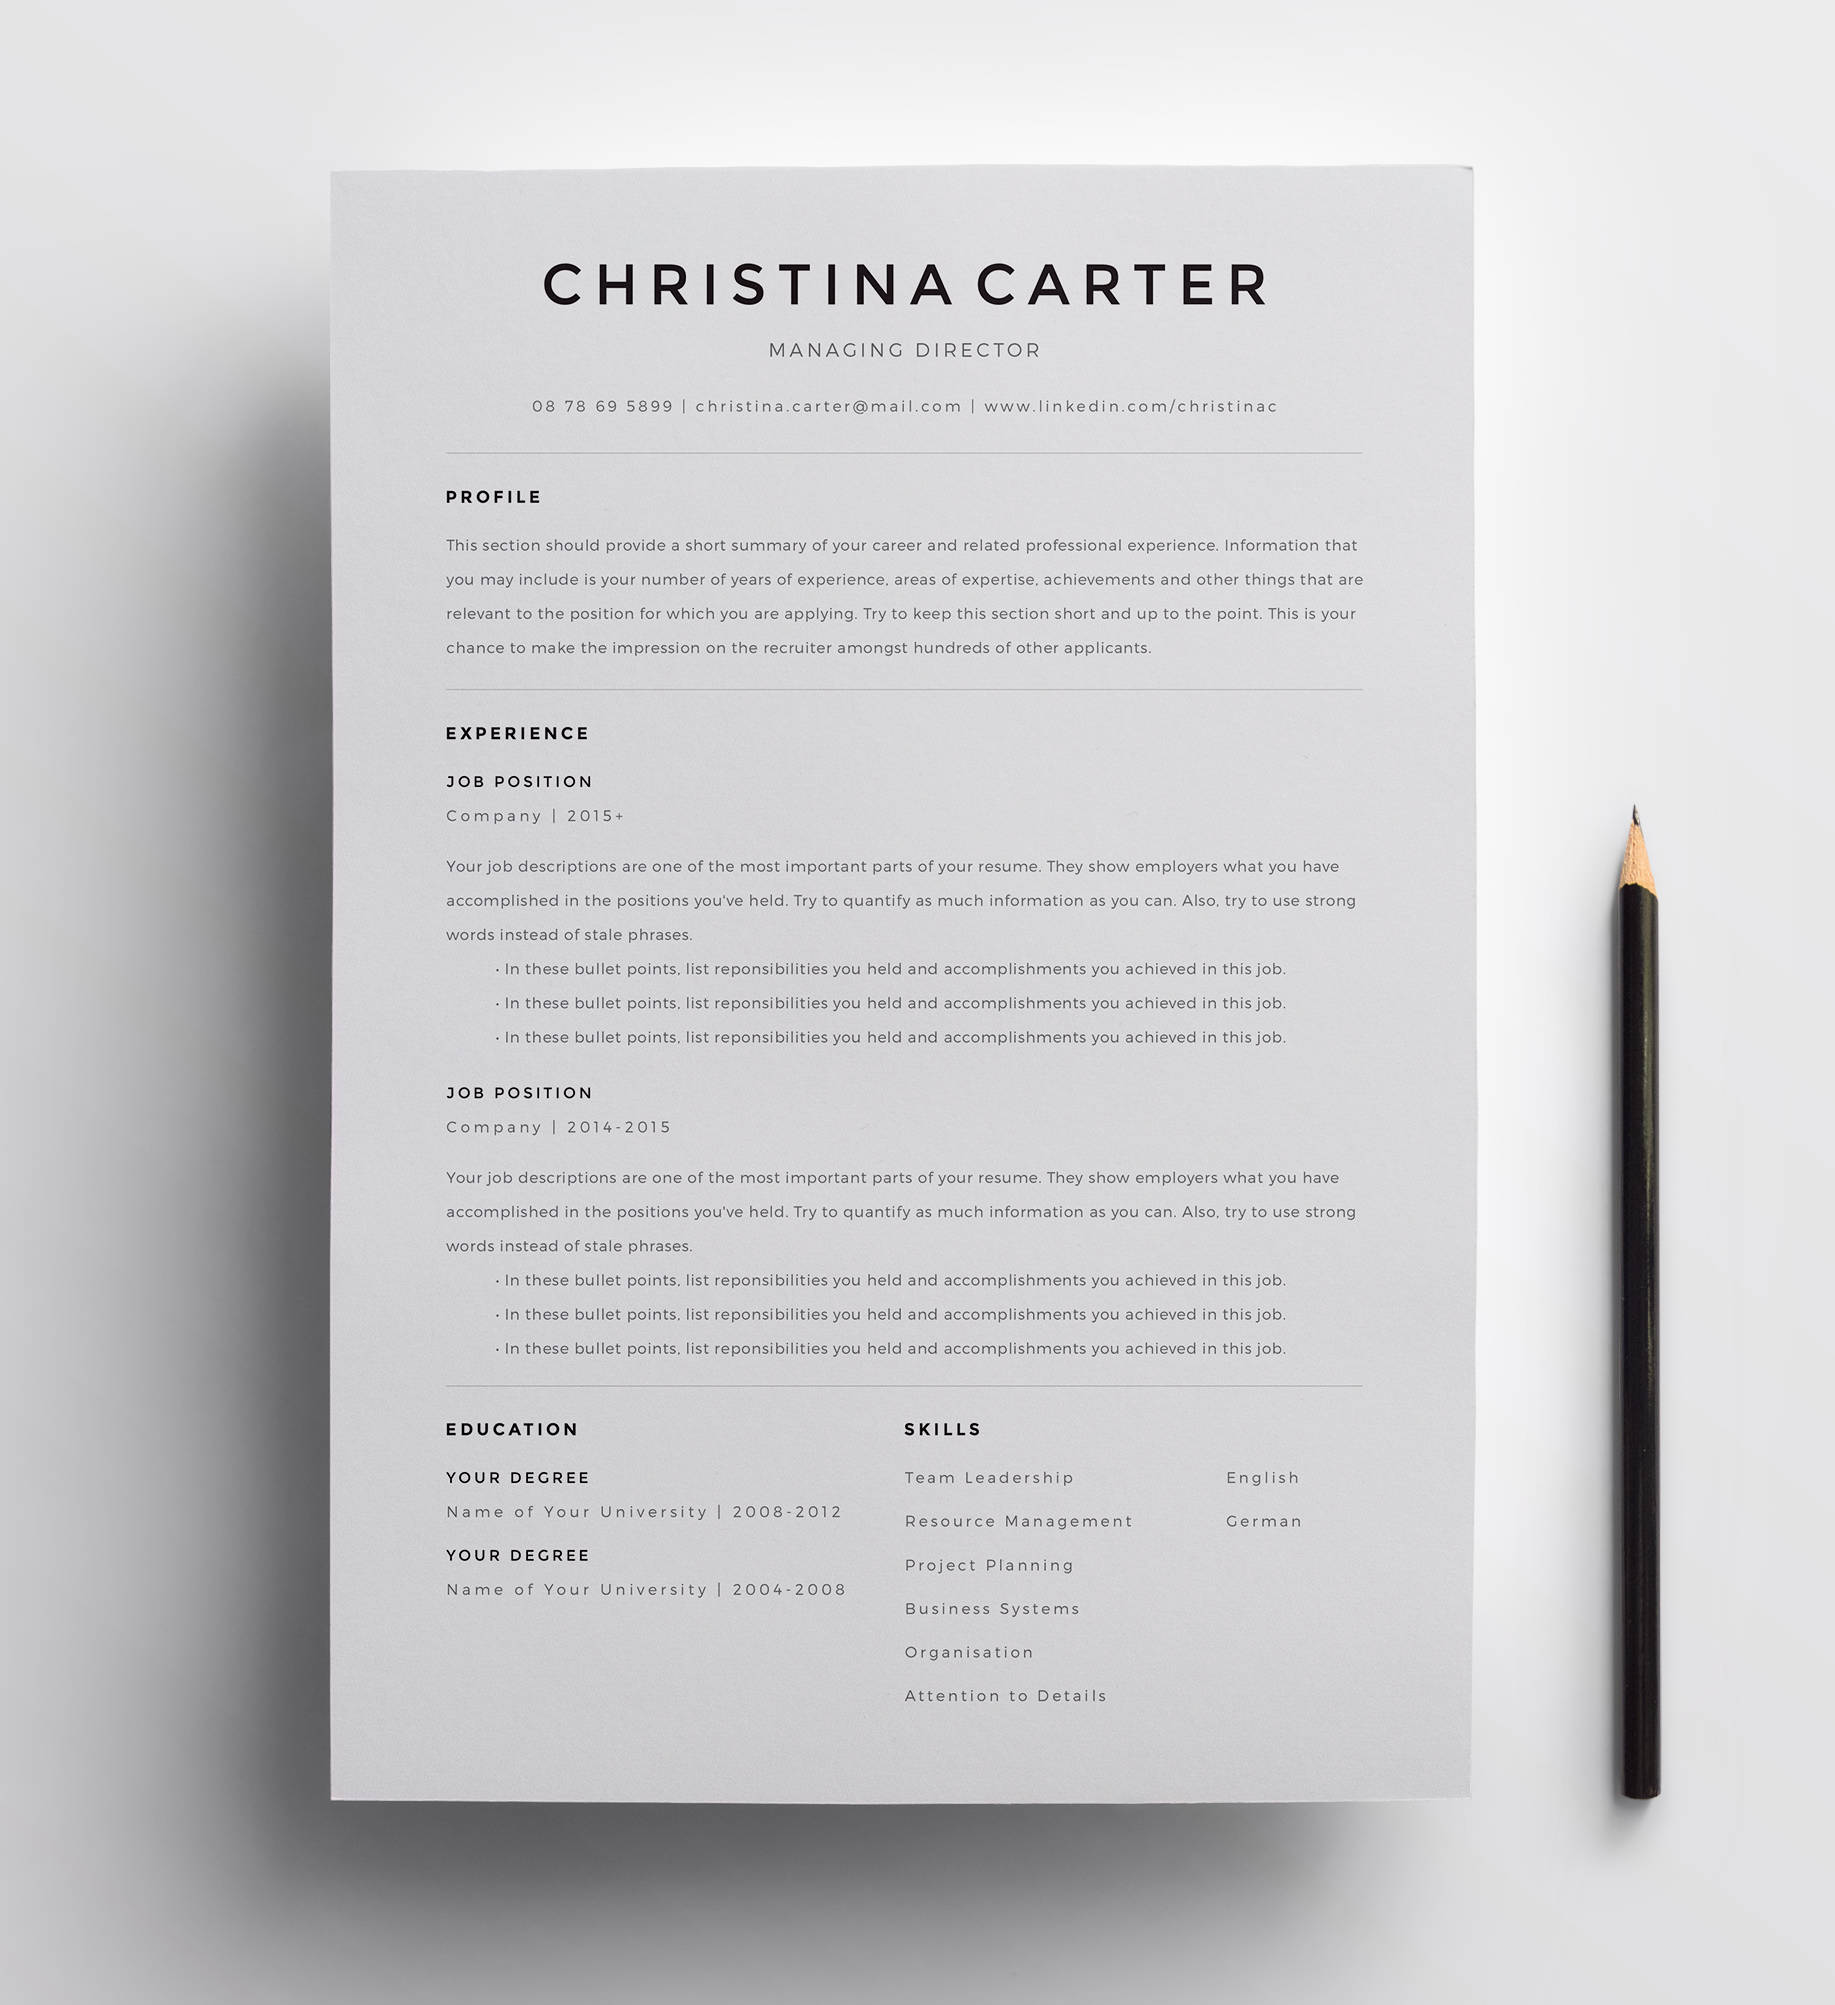 Creative Resume Template Minimalist Resume Resume Modern Resume Cv Template Cv Clean Resume Professional Resume Template For Word